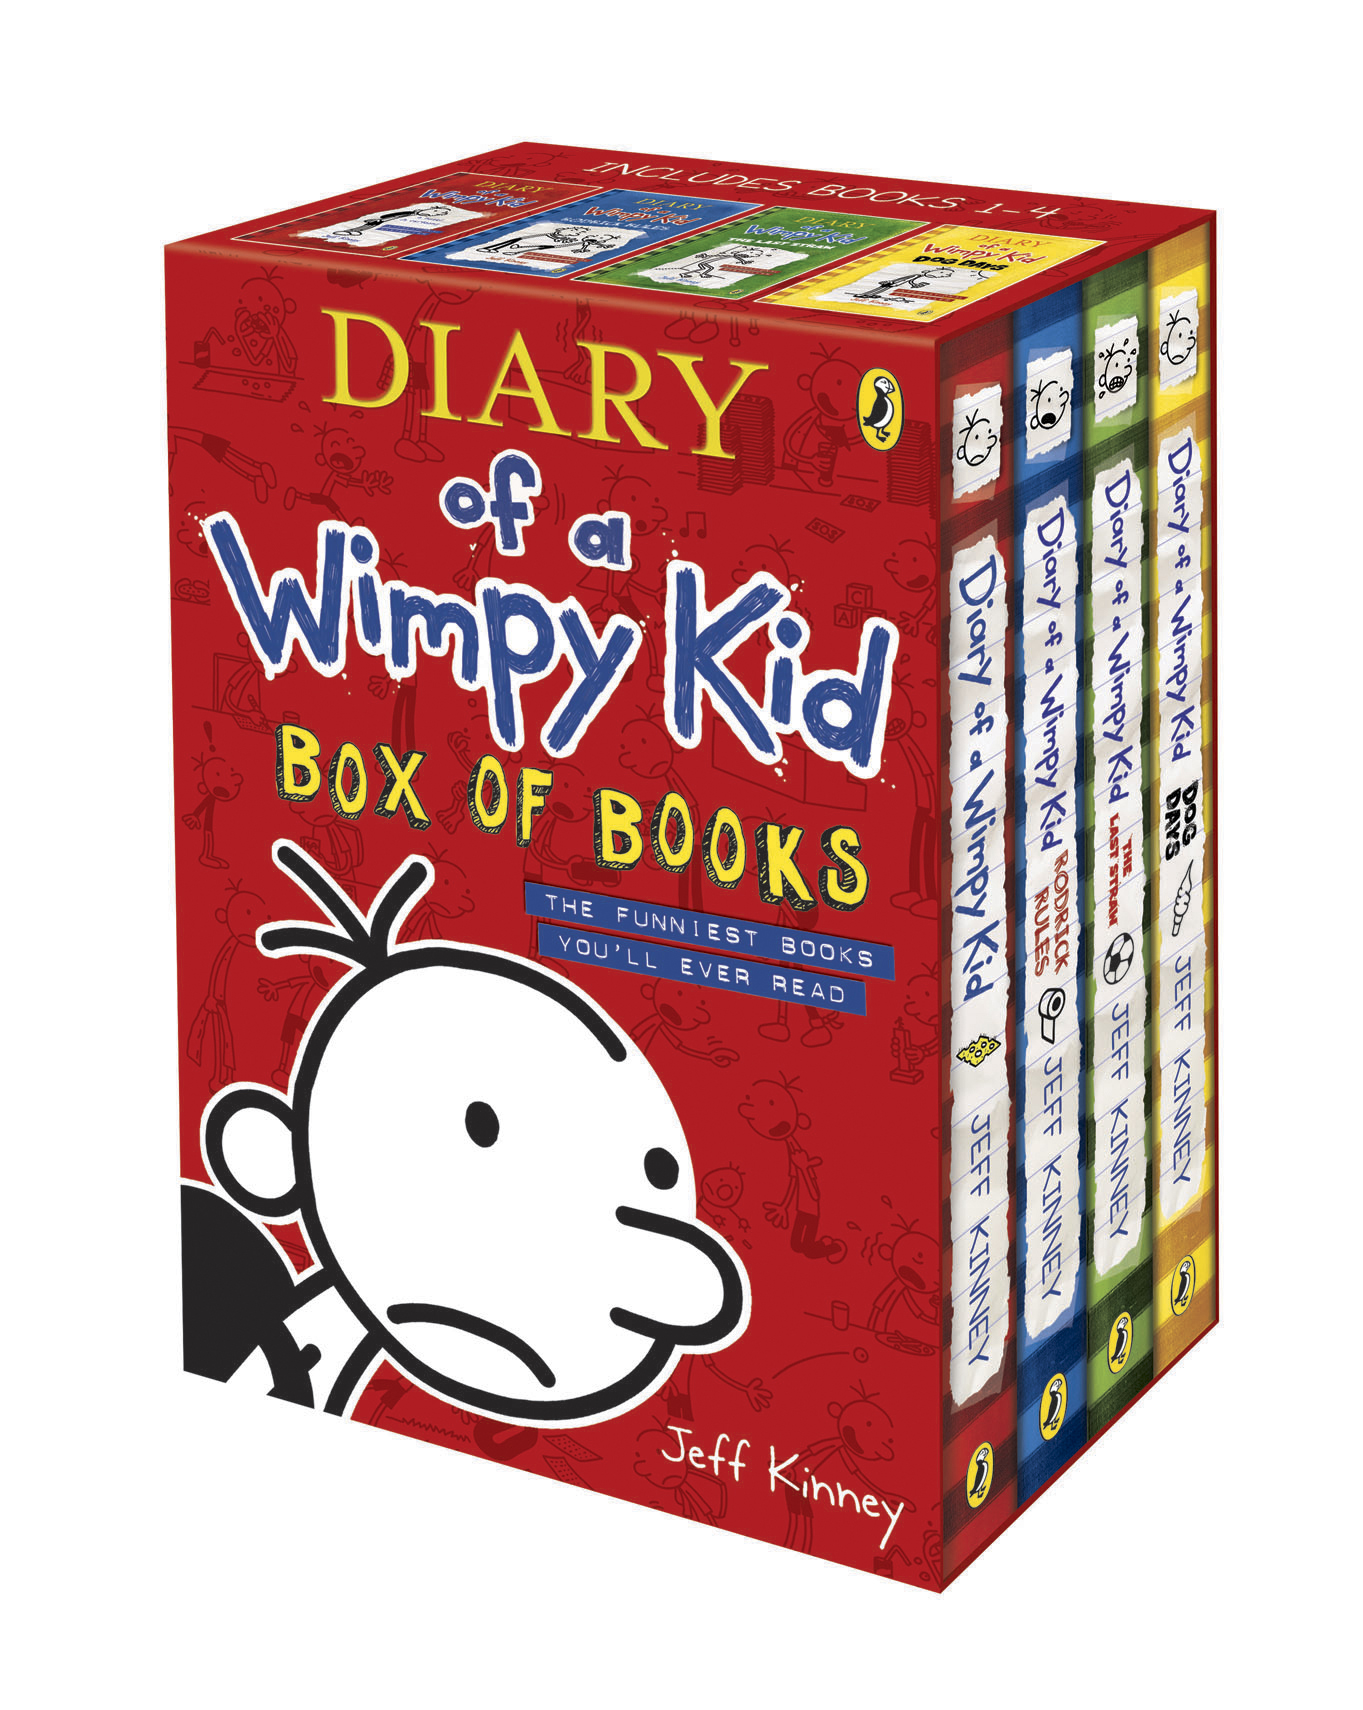 Diary of a Wimpy Kid Box of Books by Jeff Kinney, ISBN: 9780141341415